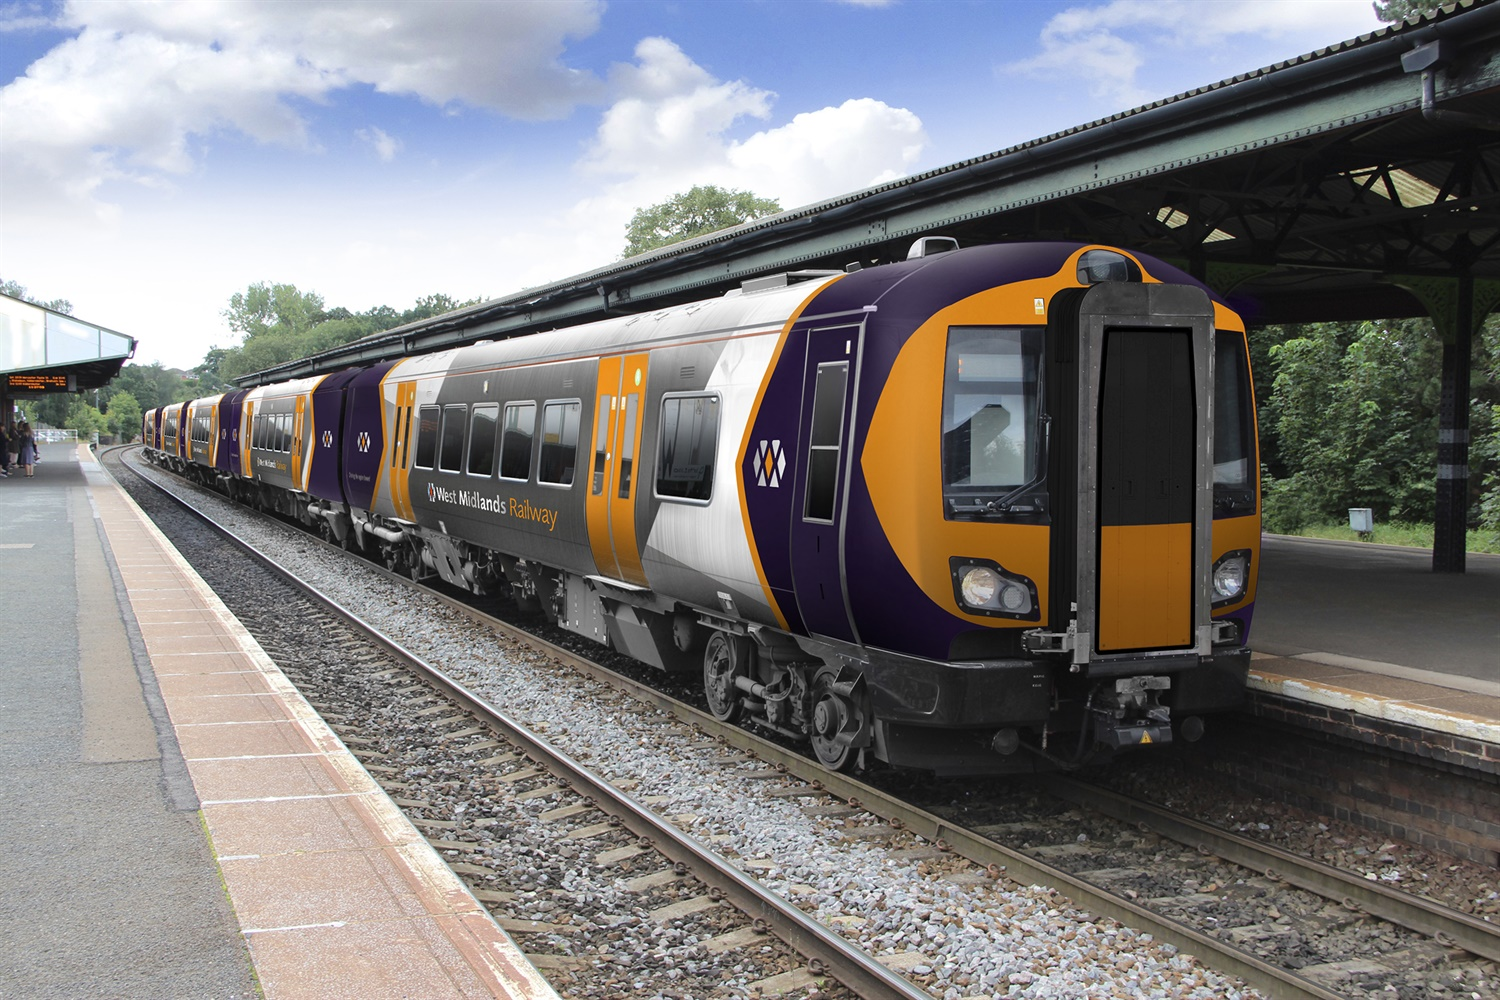 Golden era on track with £1bn revolution of West Midlands railways